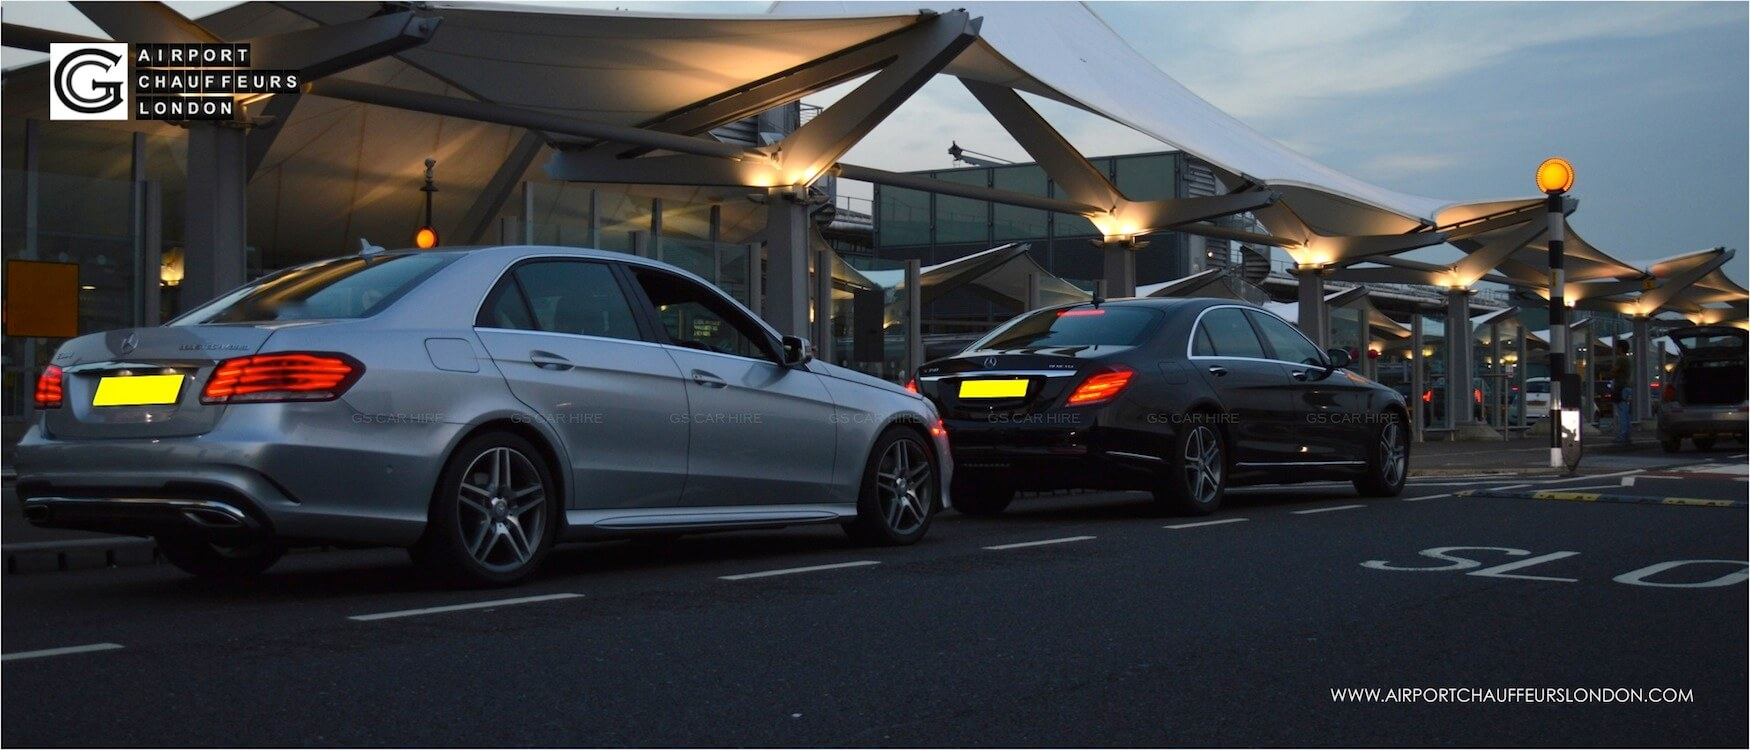 Airport Chauffeurs London Executive Car Transfers Luxury Cab Hire